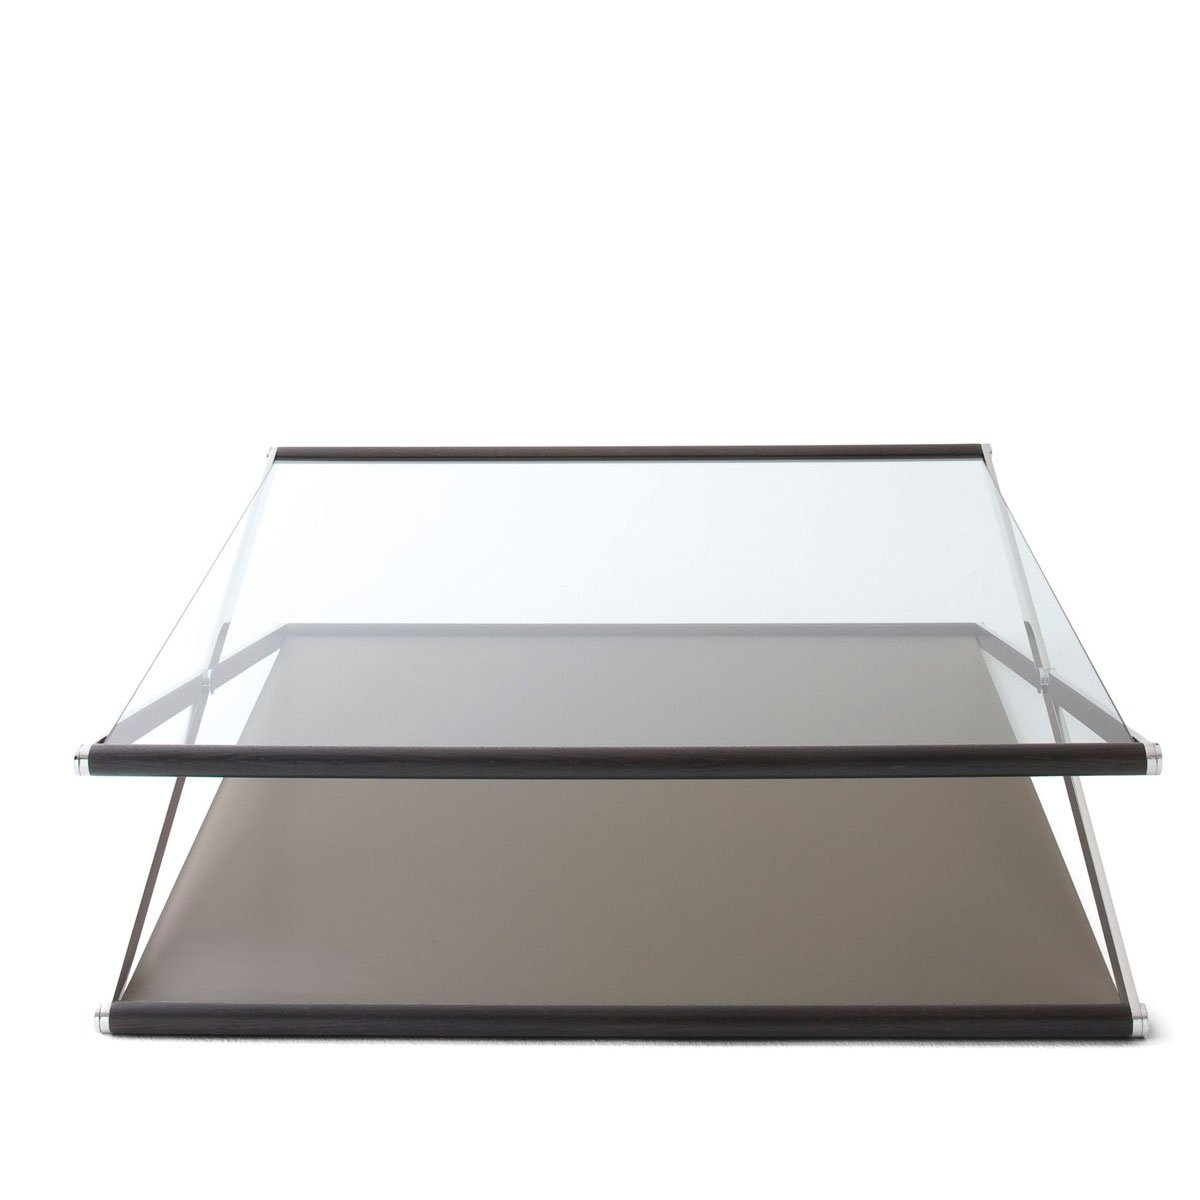 Nox glass wood and metal coffee table by gallotti radic klarity glass furniture Metal and glass coffee table